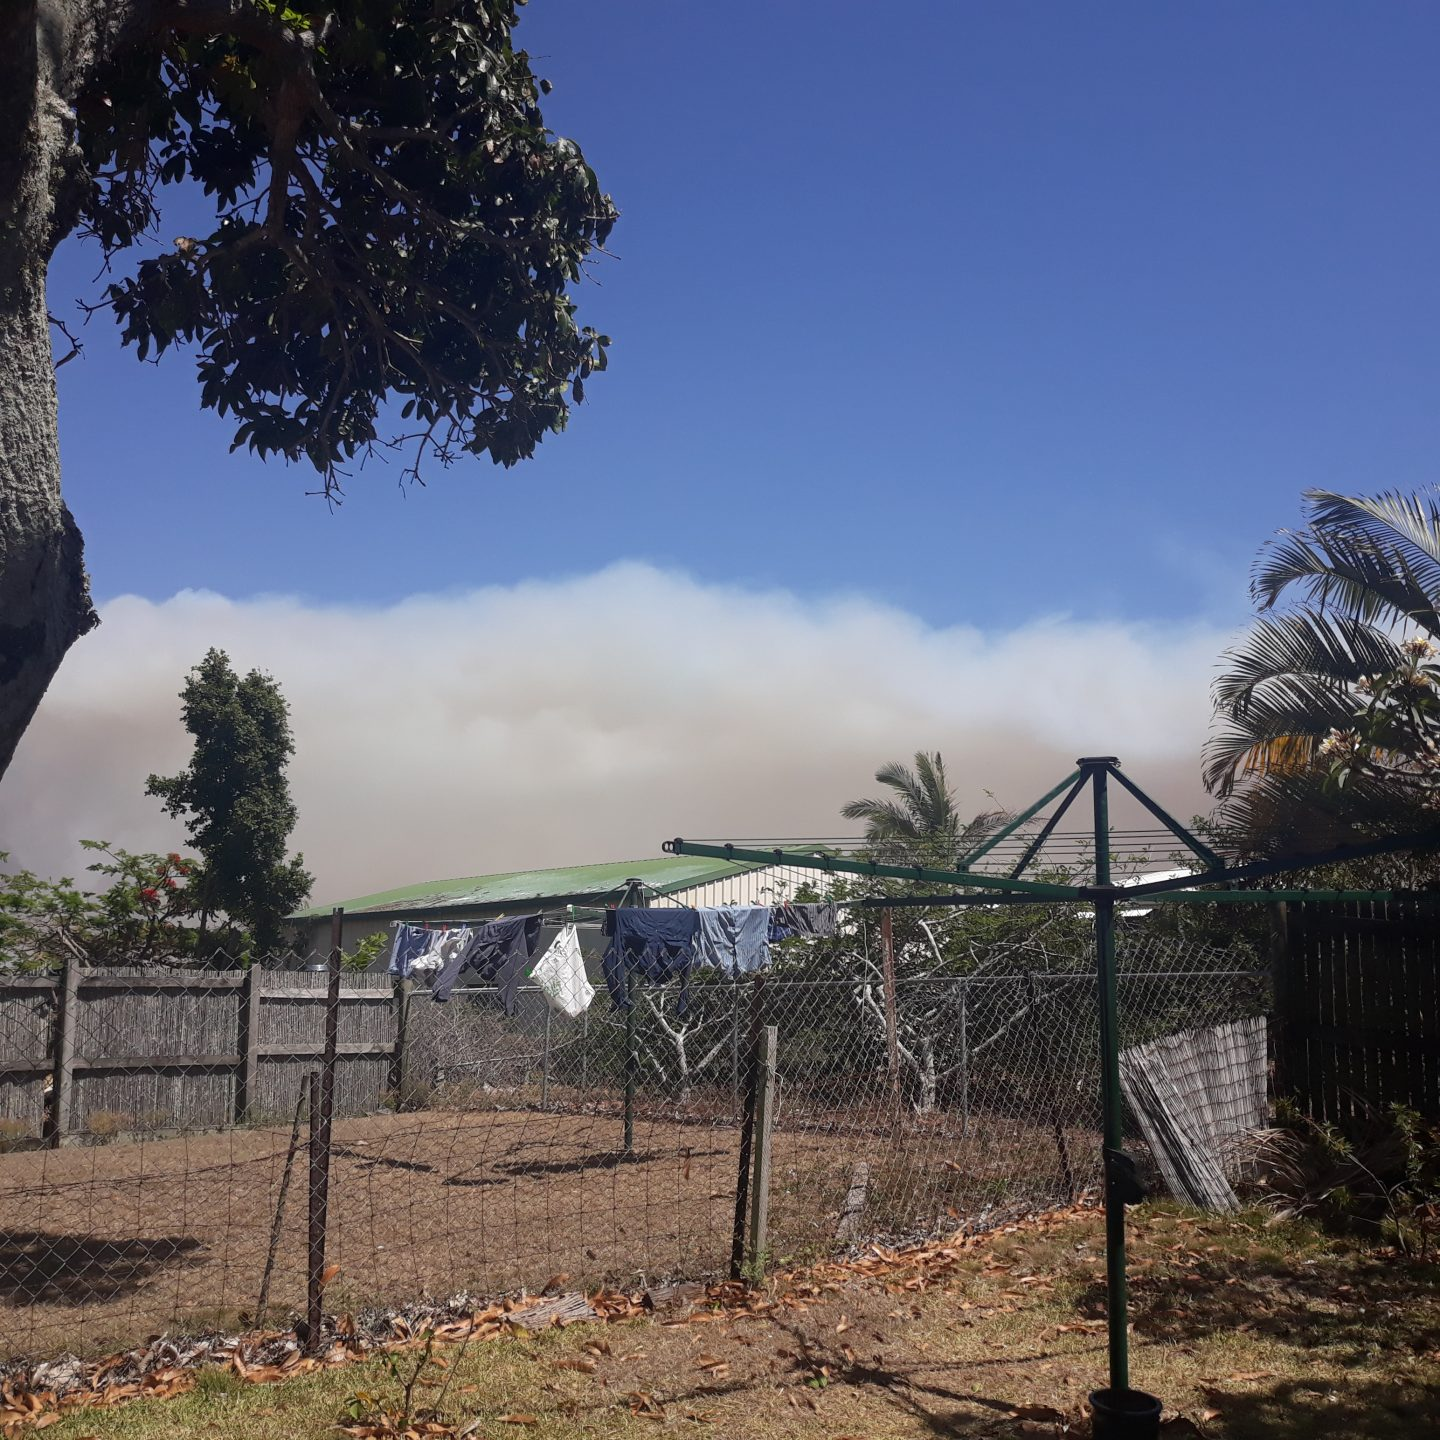 A backyard with a hills hoist clothes line and a large plume of smoke in the background.